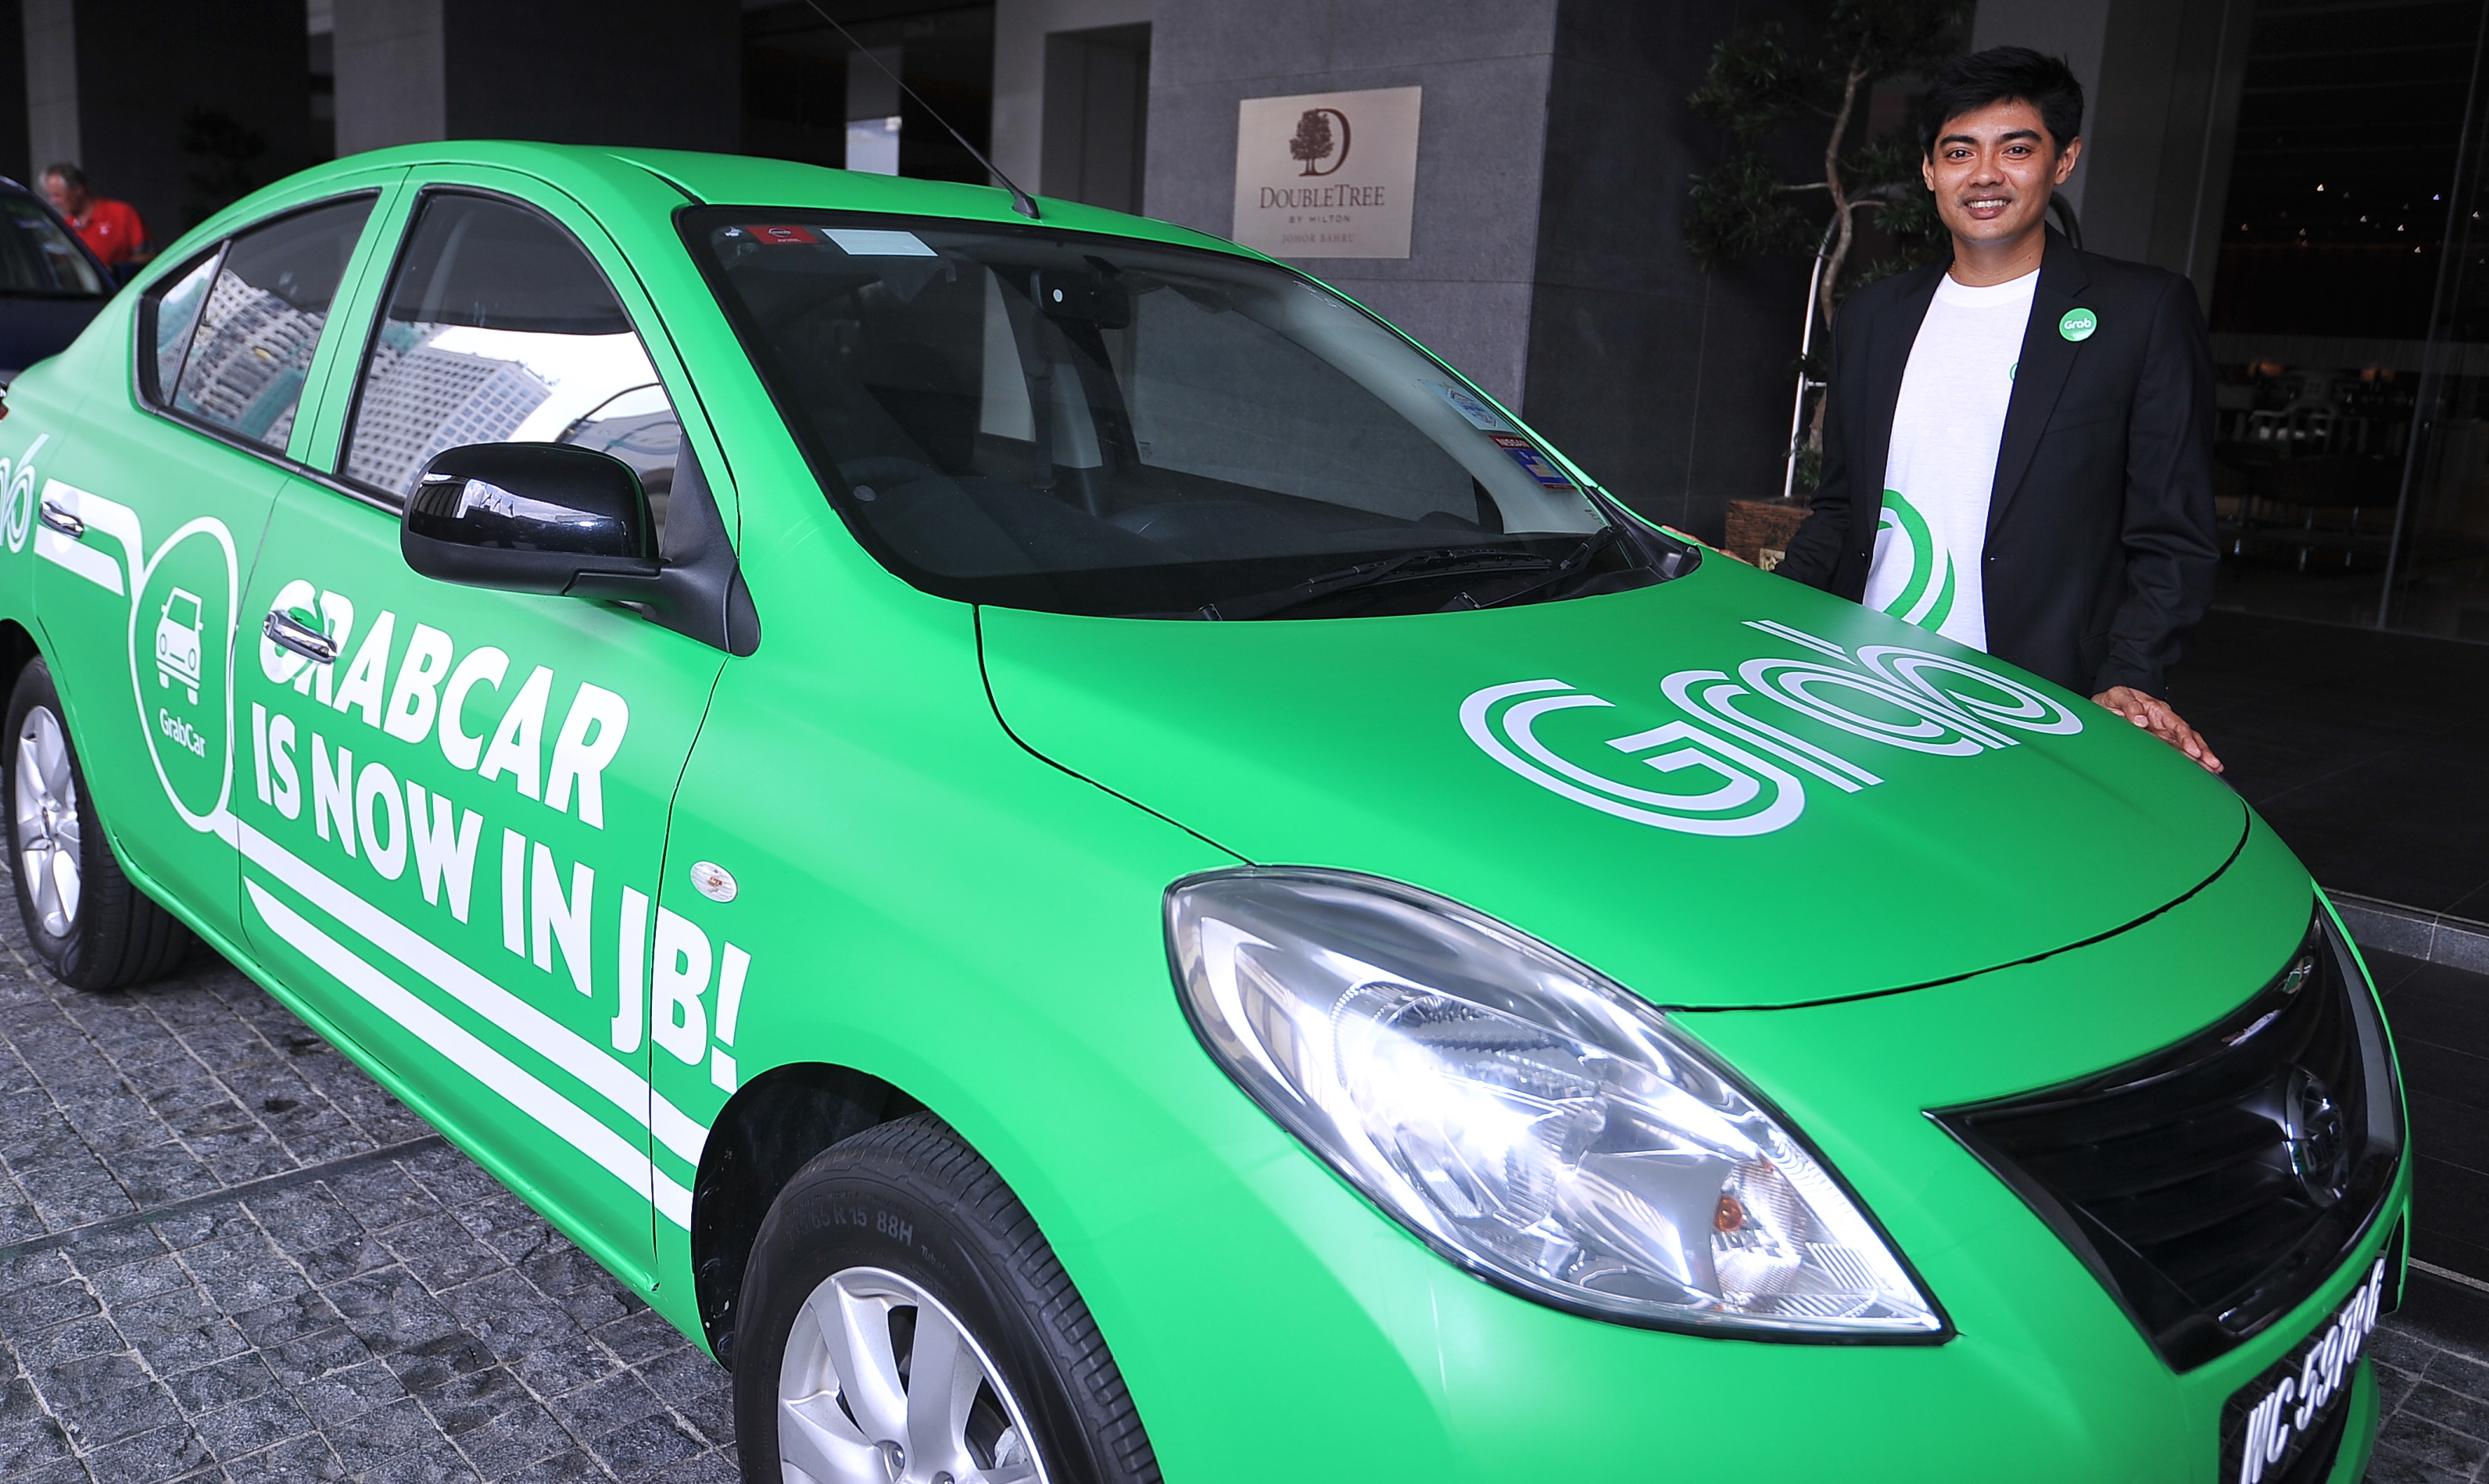 Affordable Car Insurance >> GrabCar services available in Johor Bahru on April 7